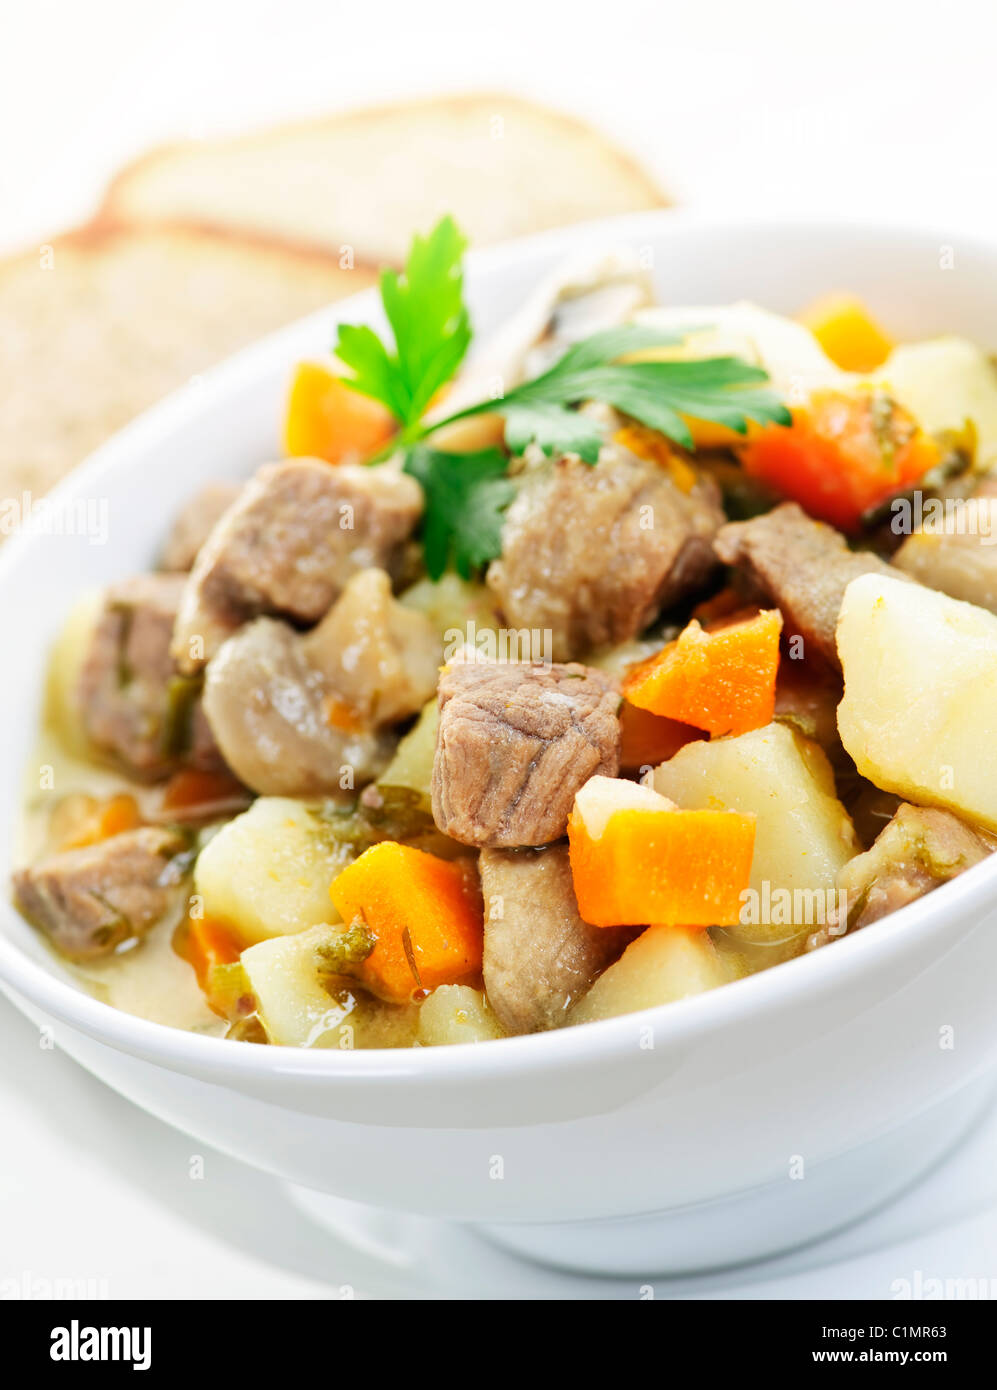 Bowl of hearty beef stew with vegetables served with rye bread - Stock Image